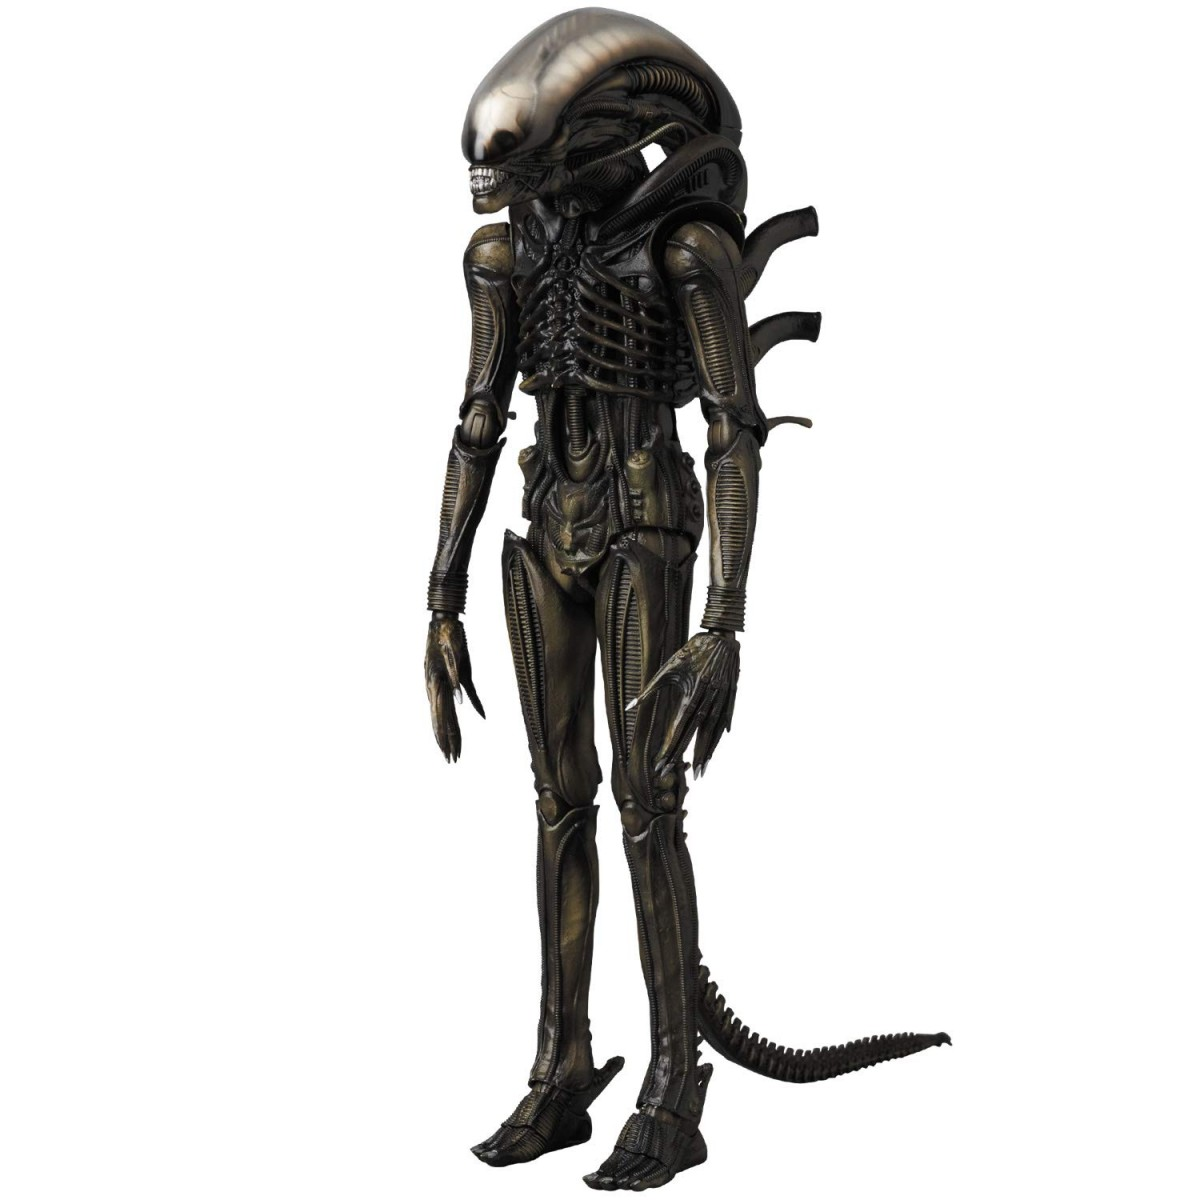 MAFEX Series Alien